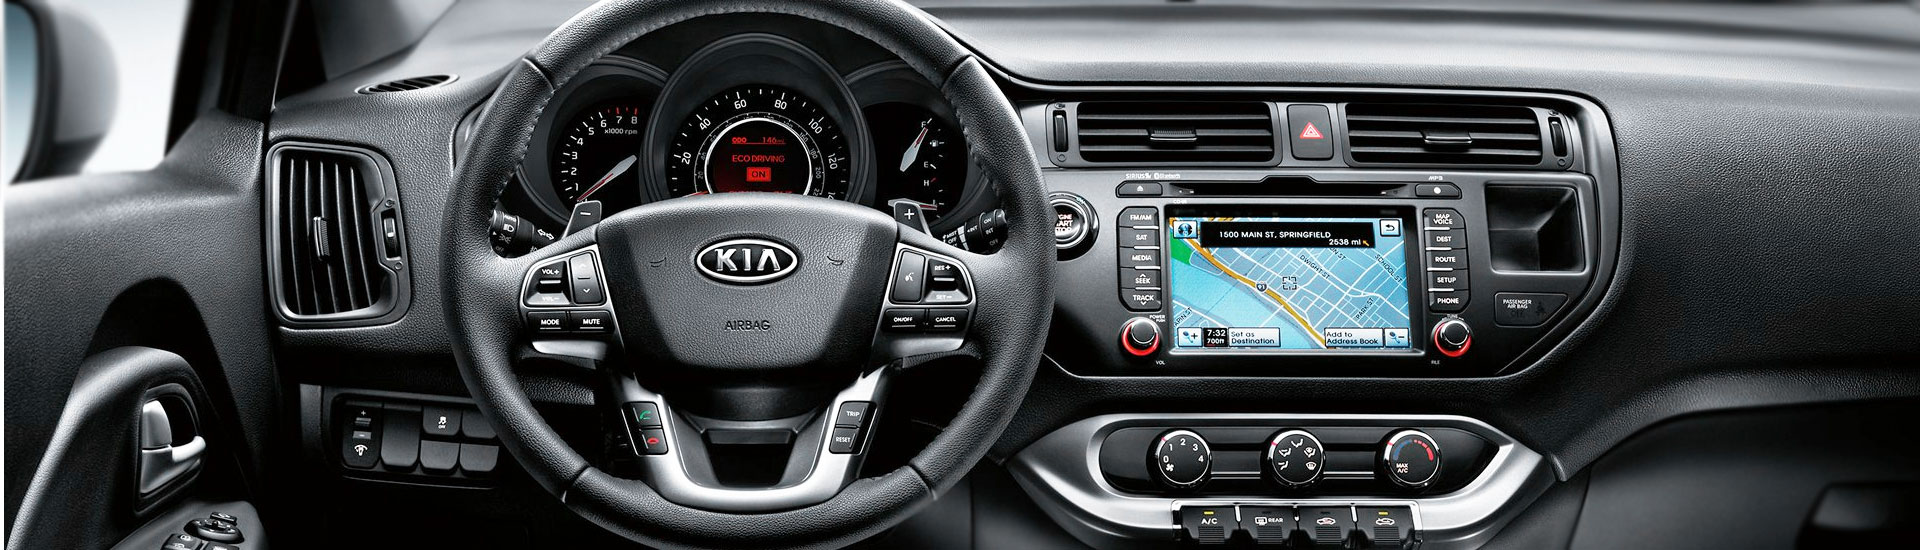 2009 Kia Borrego Custom Dash Kits